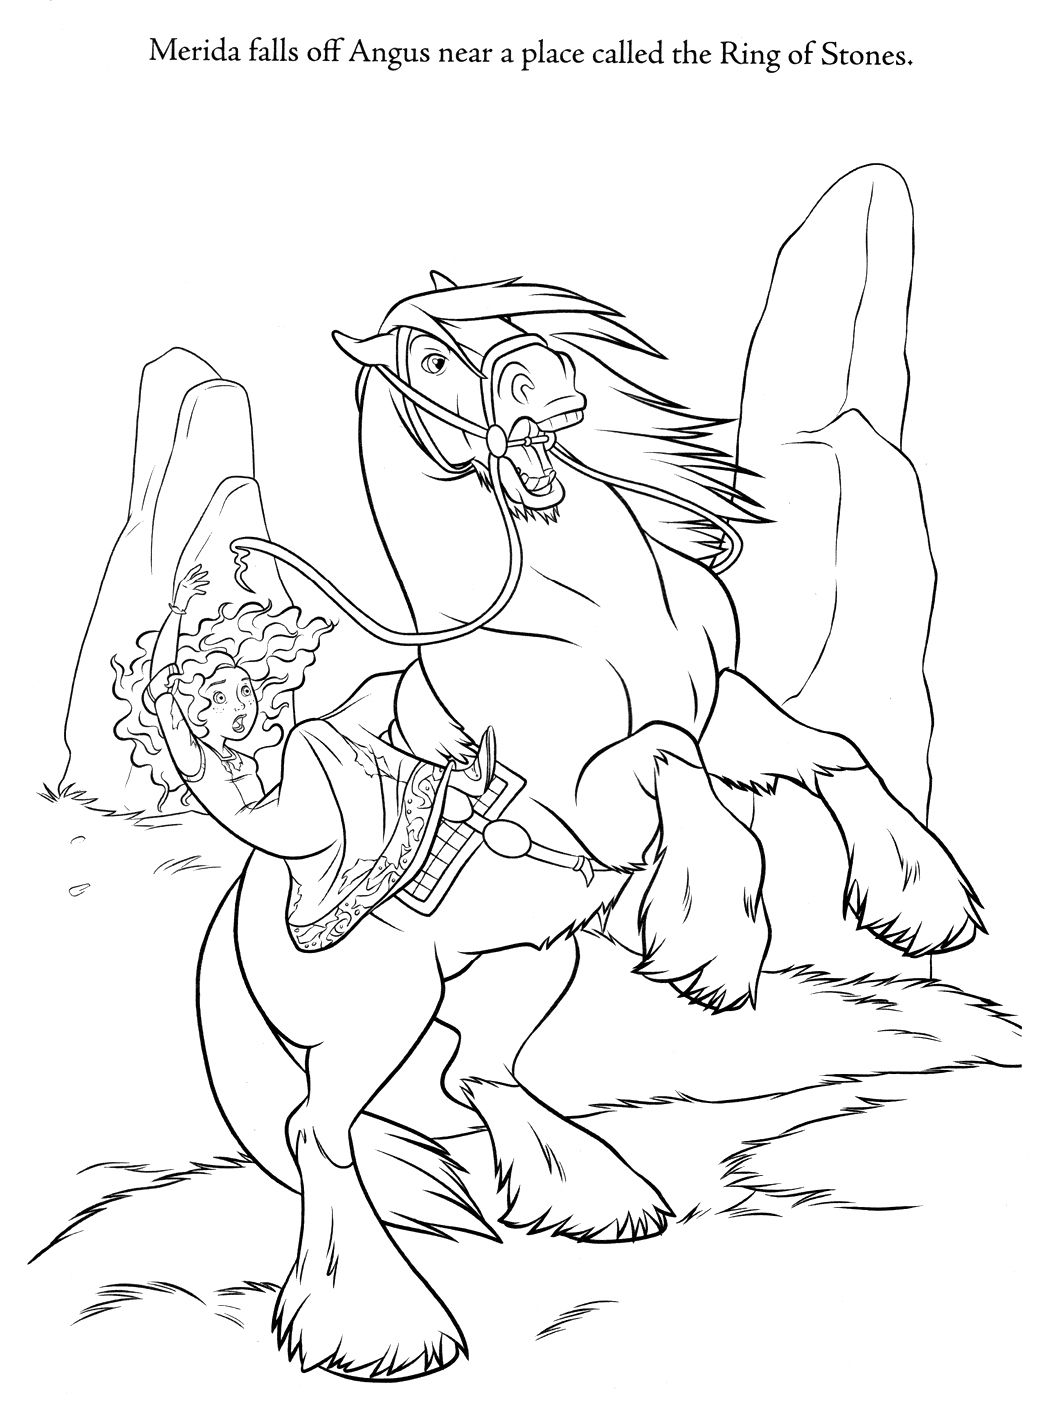 brave coloring page 36 is a coloring page from brave coloring booklet your children express their imagination when they color the brave coloring page they